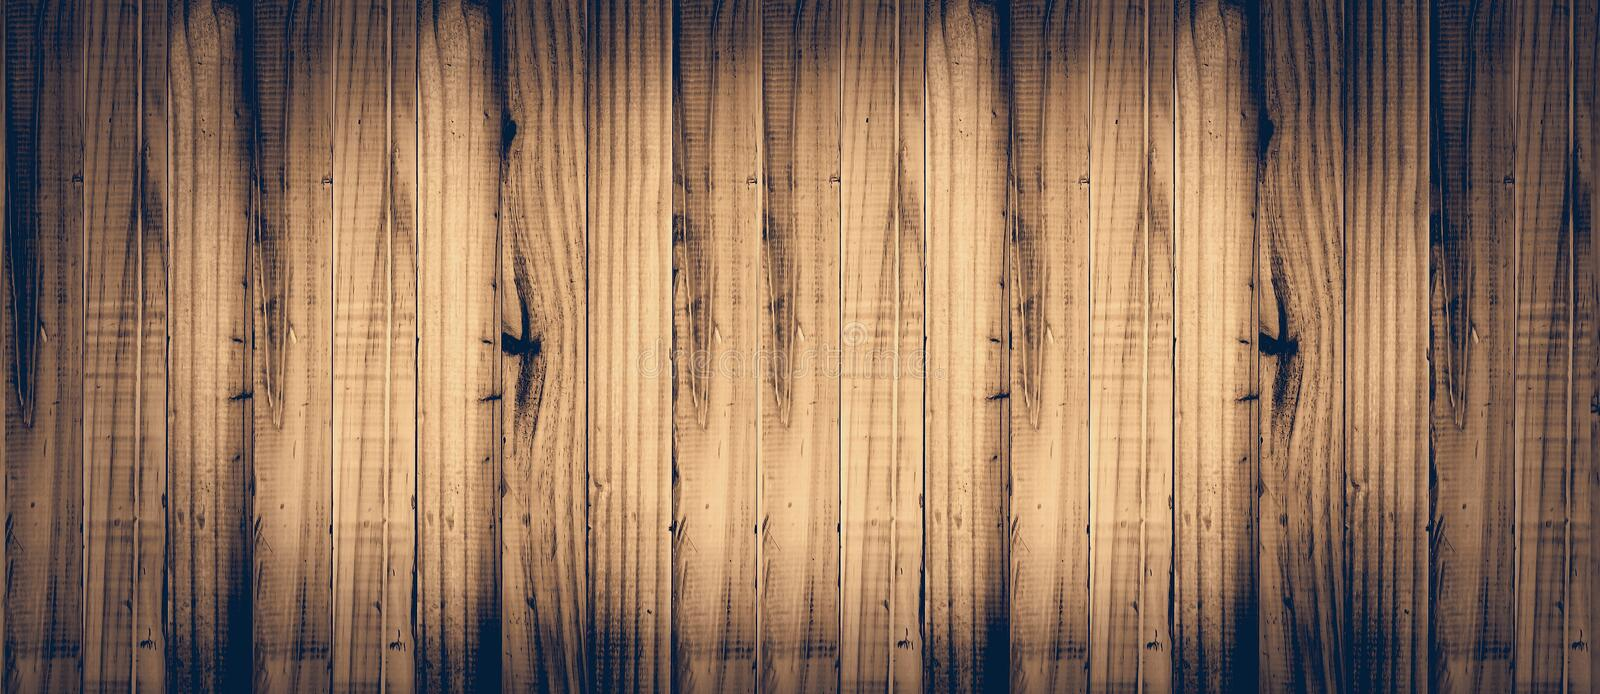 Wooden texture background. Old Wooden and woodentexture background stock image